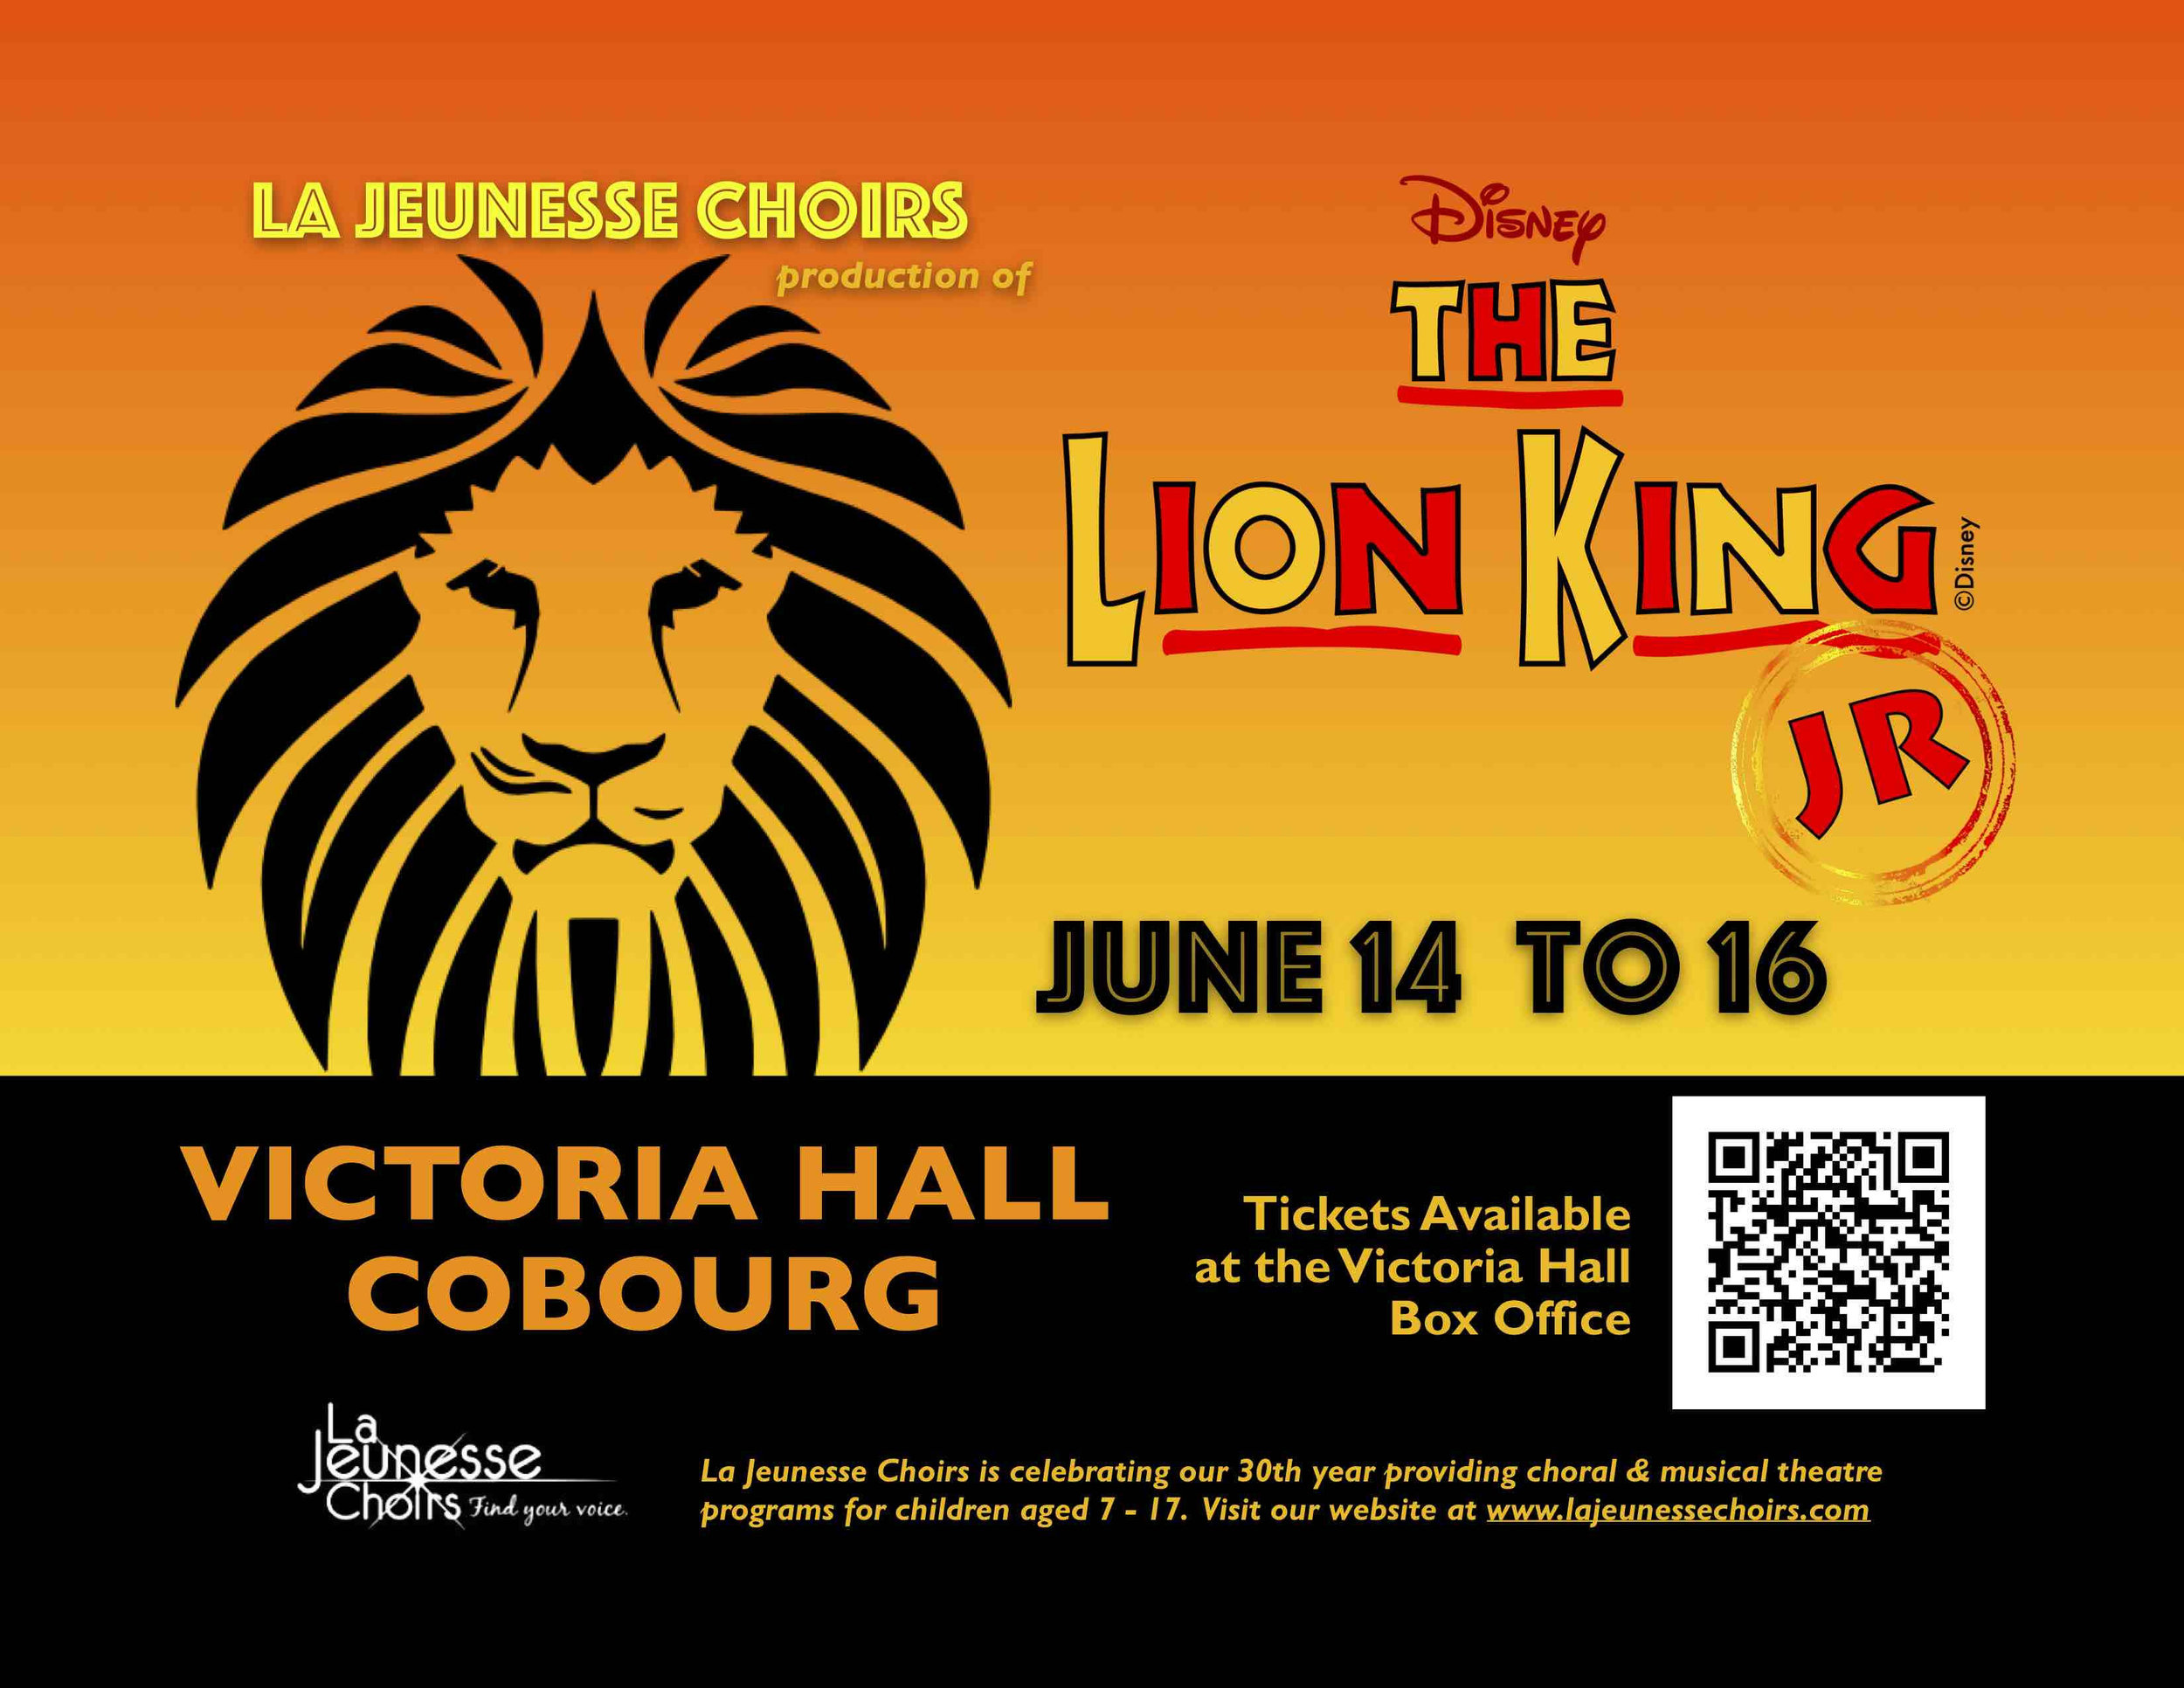 La Jeunesse Choirs is celebrating its 30th year serving the youth of our community with a special musical theatre presentation of   The Lion King Jr.   this June 14th to 16th at Victoria Hall in Cobourg. Our volunteers are creating broadway-inspired sets and costumes to showcase amazing singing and choreography in this classic Disney story.     Tickets are $19.50 plus handling and are available now in person or online at the Victoria Hall Box Office  http://www.concerthallatvictoriahall.com/VHshow_LaJeunesseLK.html  .